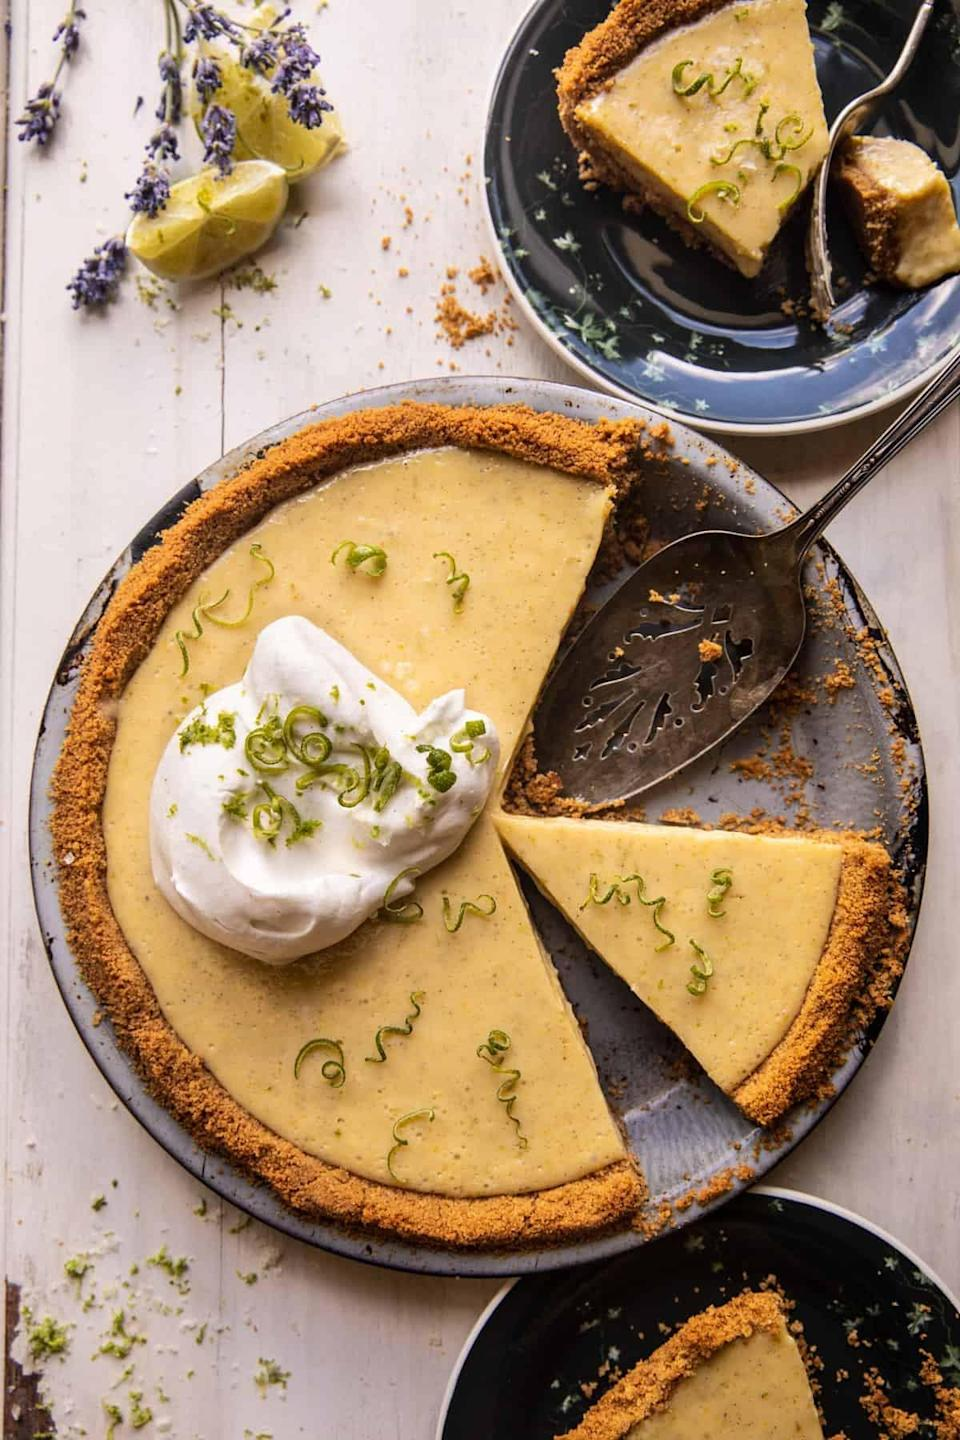 "<p>Tangy, creamy, and double stuffed, this key-lime pie is a dessert-lover's dream come true. Imagine: a thick and buttery crust surrounding a sweet and zesty fresh lime filling. What could be better, you ask? Oh, just two layers of crust.</p> <p><strong>Get the recipe</strong>: <a href=""https://www.halfbakedharvest.com/key-lime-pie/"" class=""link rapid-noclick-resp"" rel=""nofollow noopener"" target=""_blank"" data-ylk=""slk:double-stuffed vanilla key-lime pie"">double-stuffed vanilla key-lime pie</a></p>"